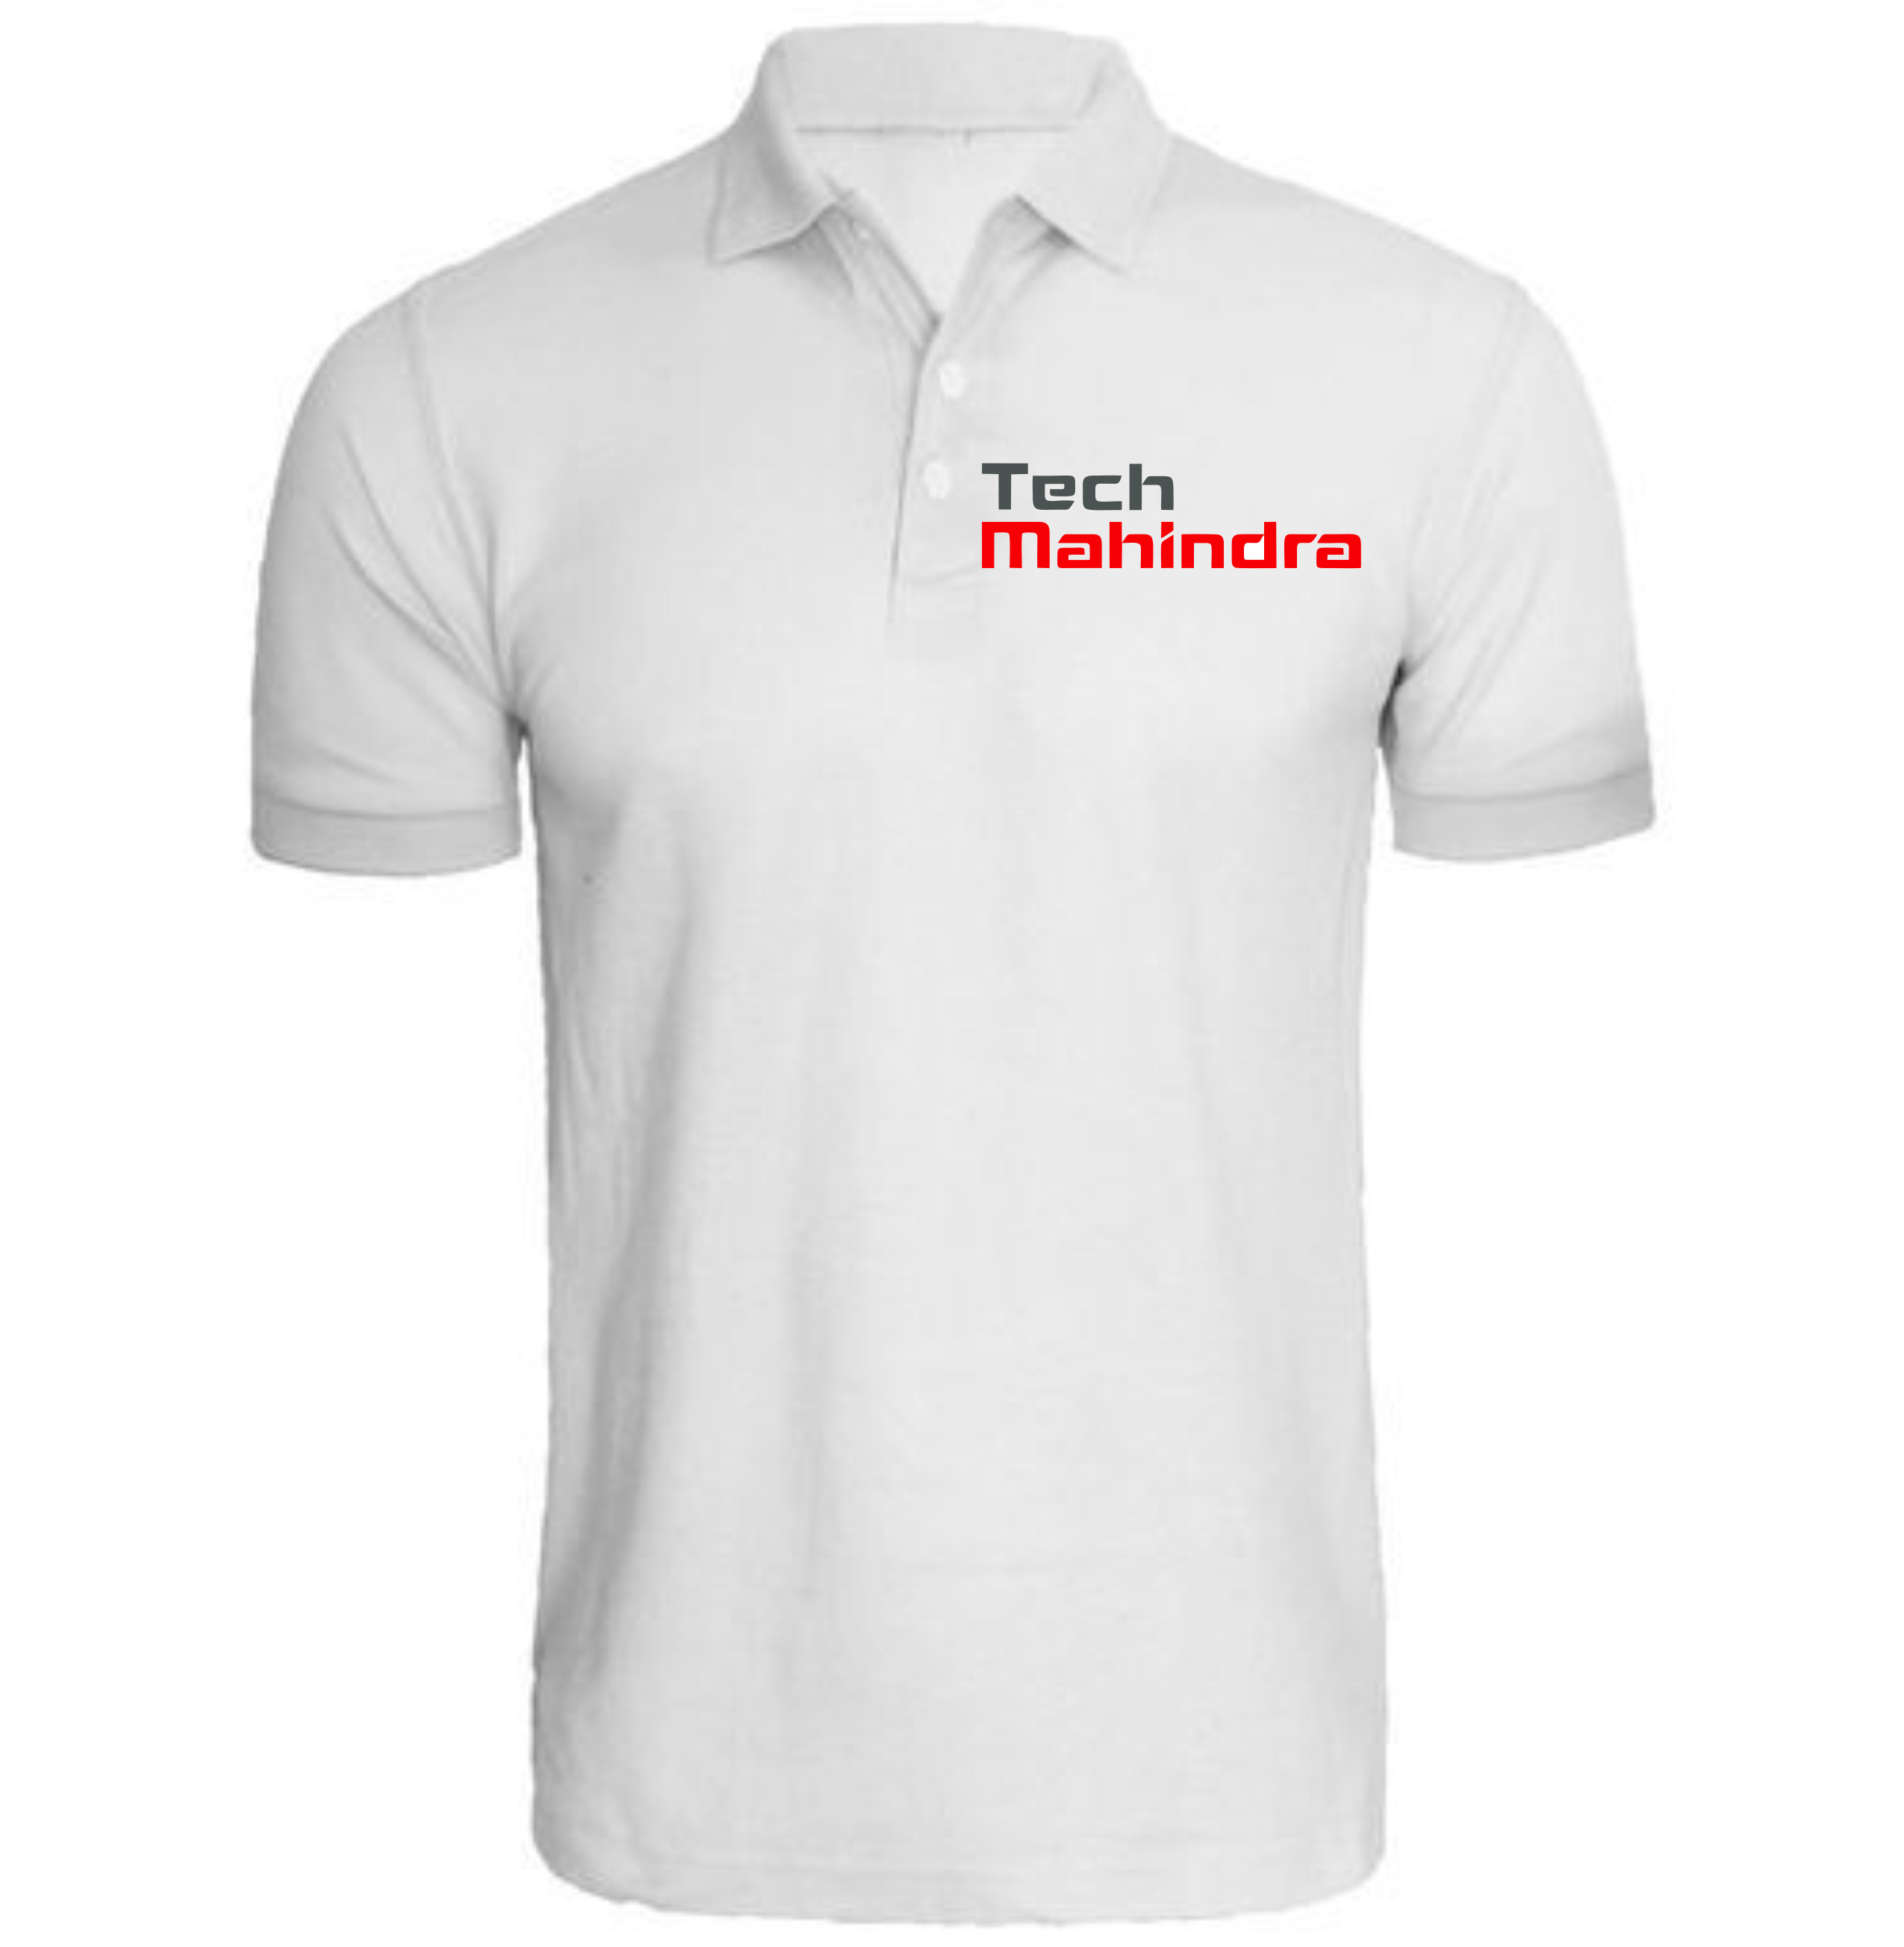 Promotional t-shirt